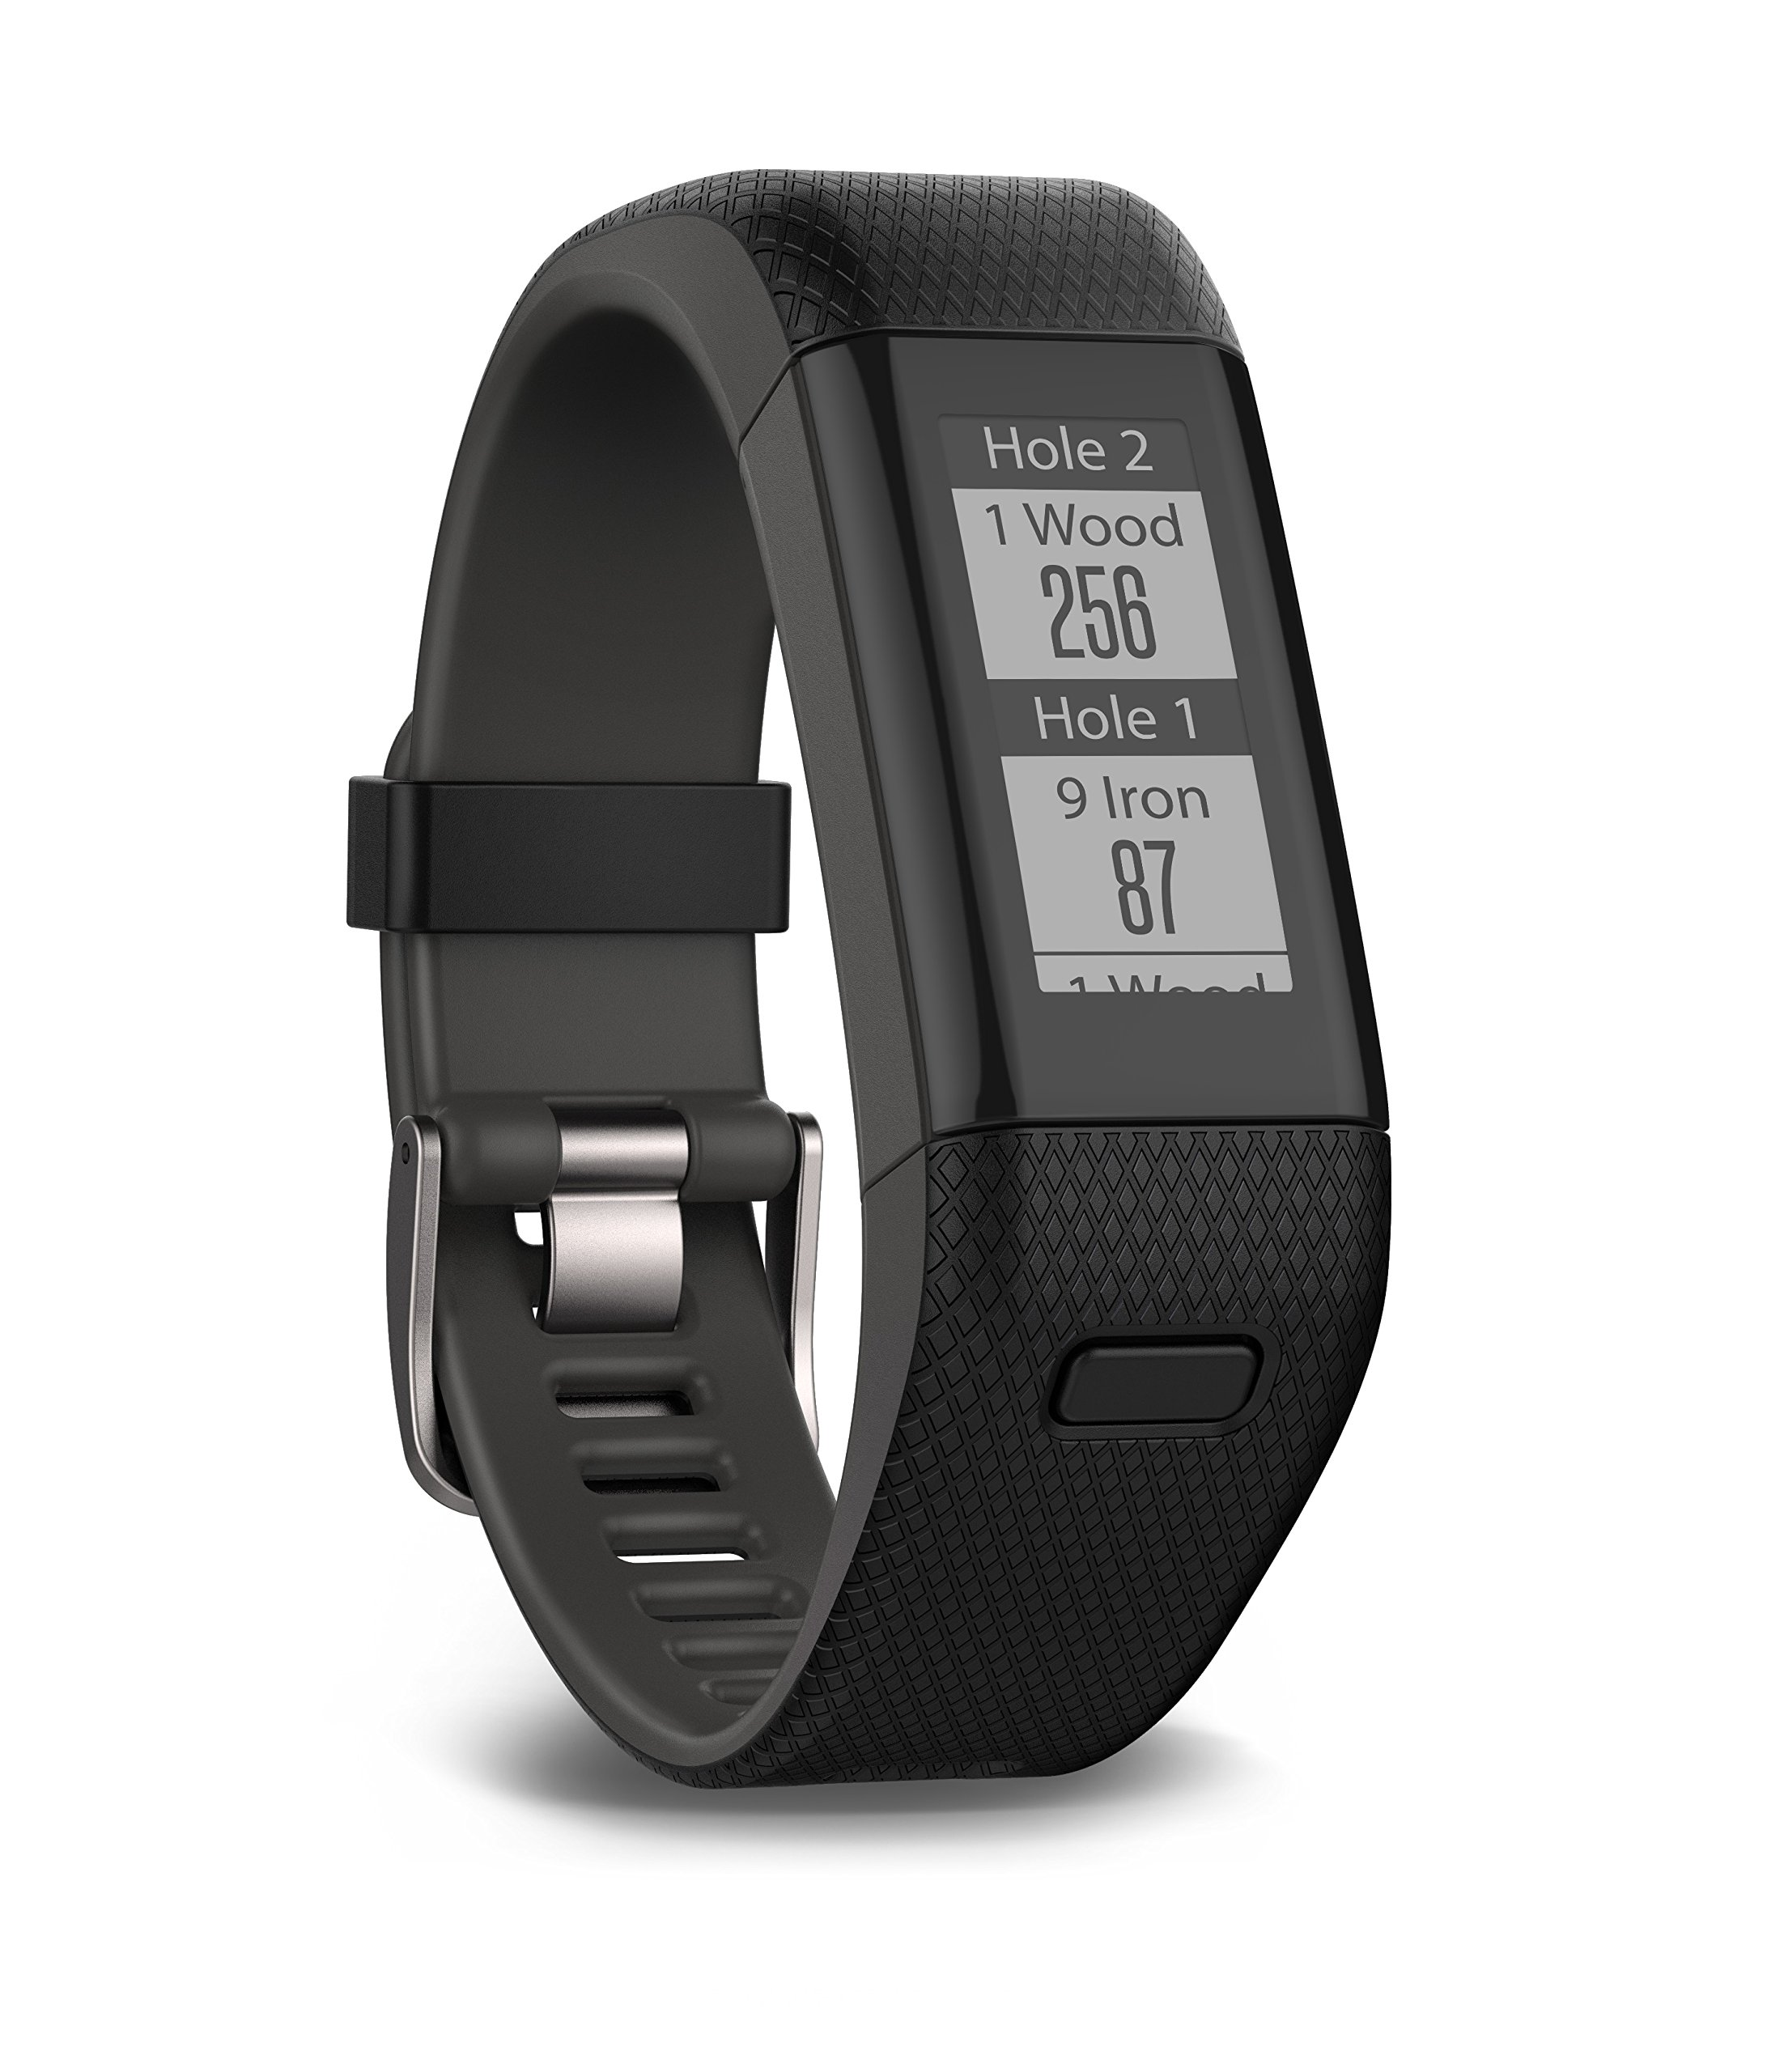 Garmin Approach X40, GPS Golf Band and Activity Tracker with Heart Rate Monitoring, Black by Garmin